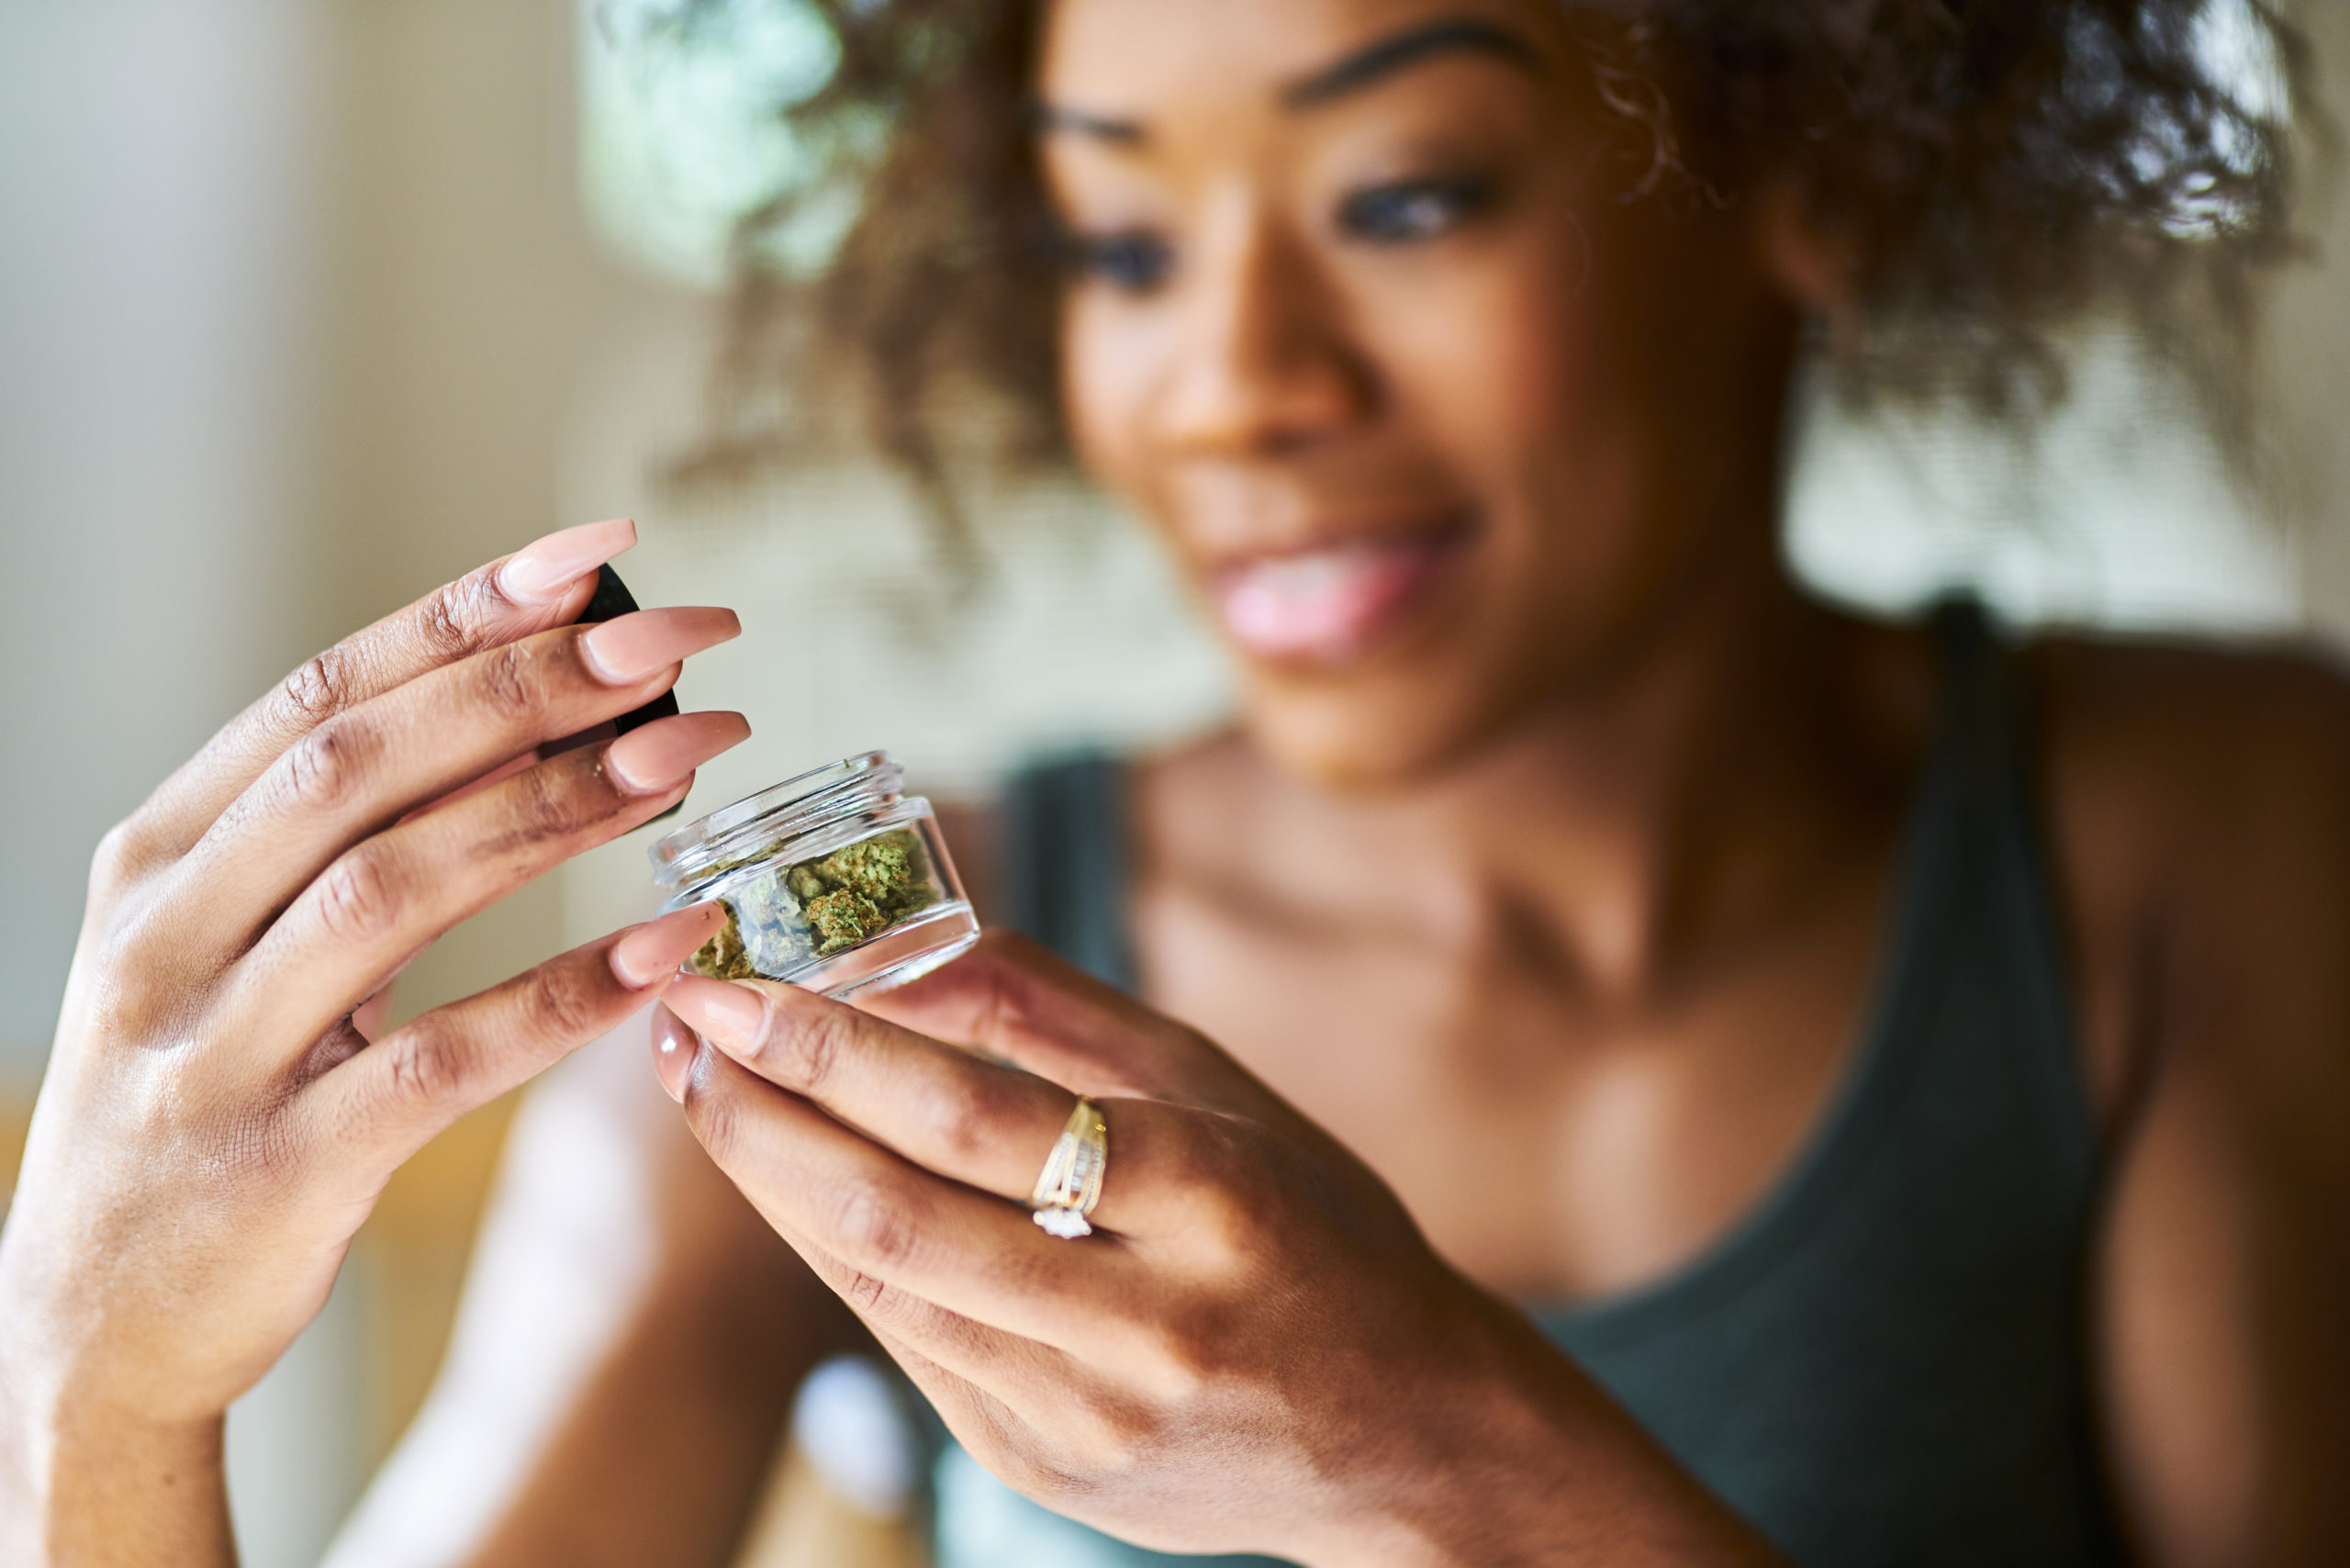 How to Buy Cannabis at a Dispensary for the First Time